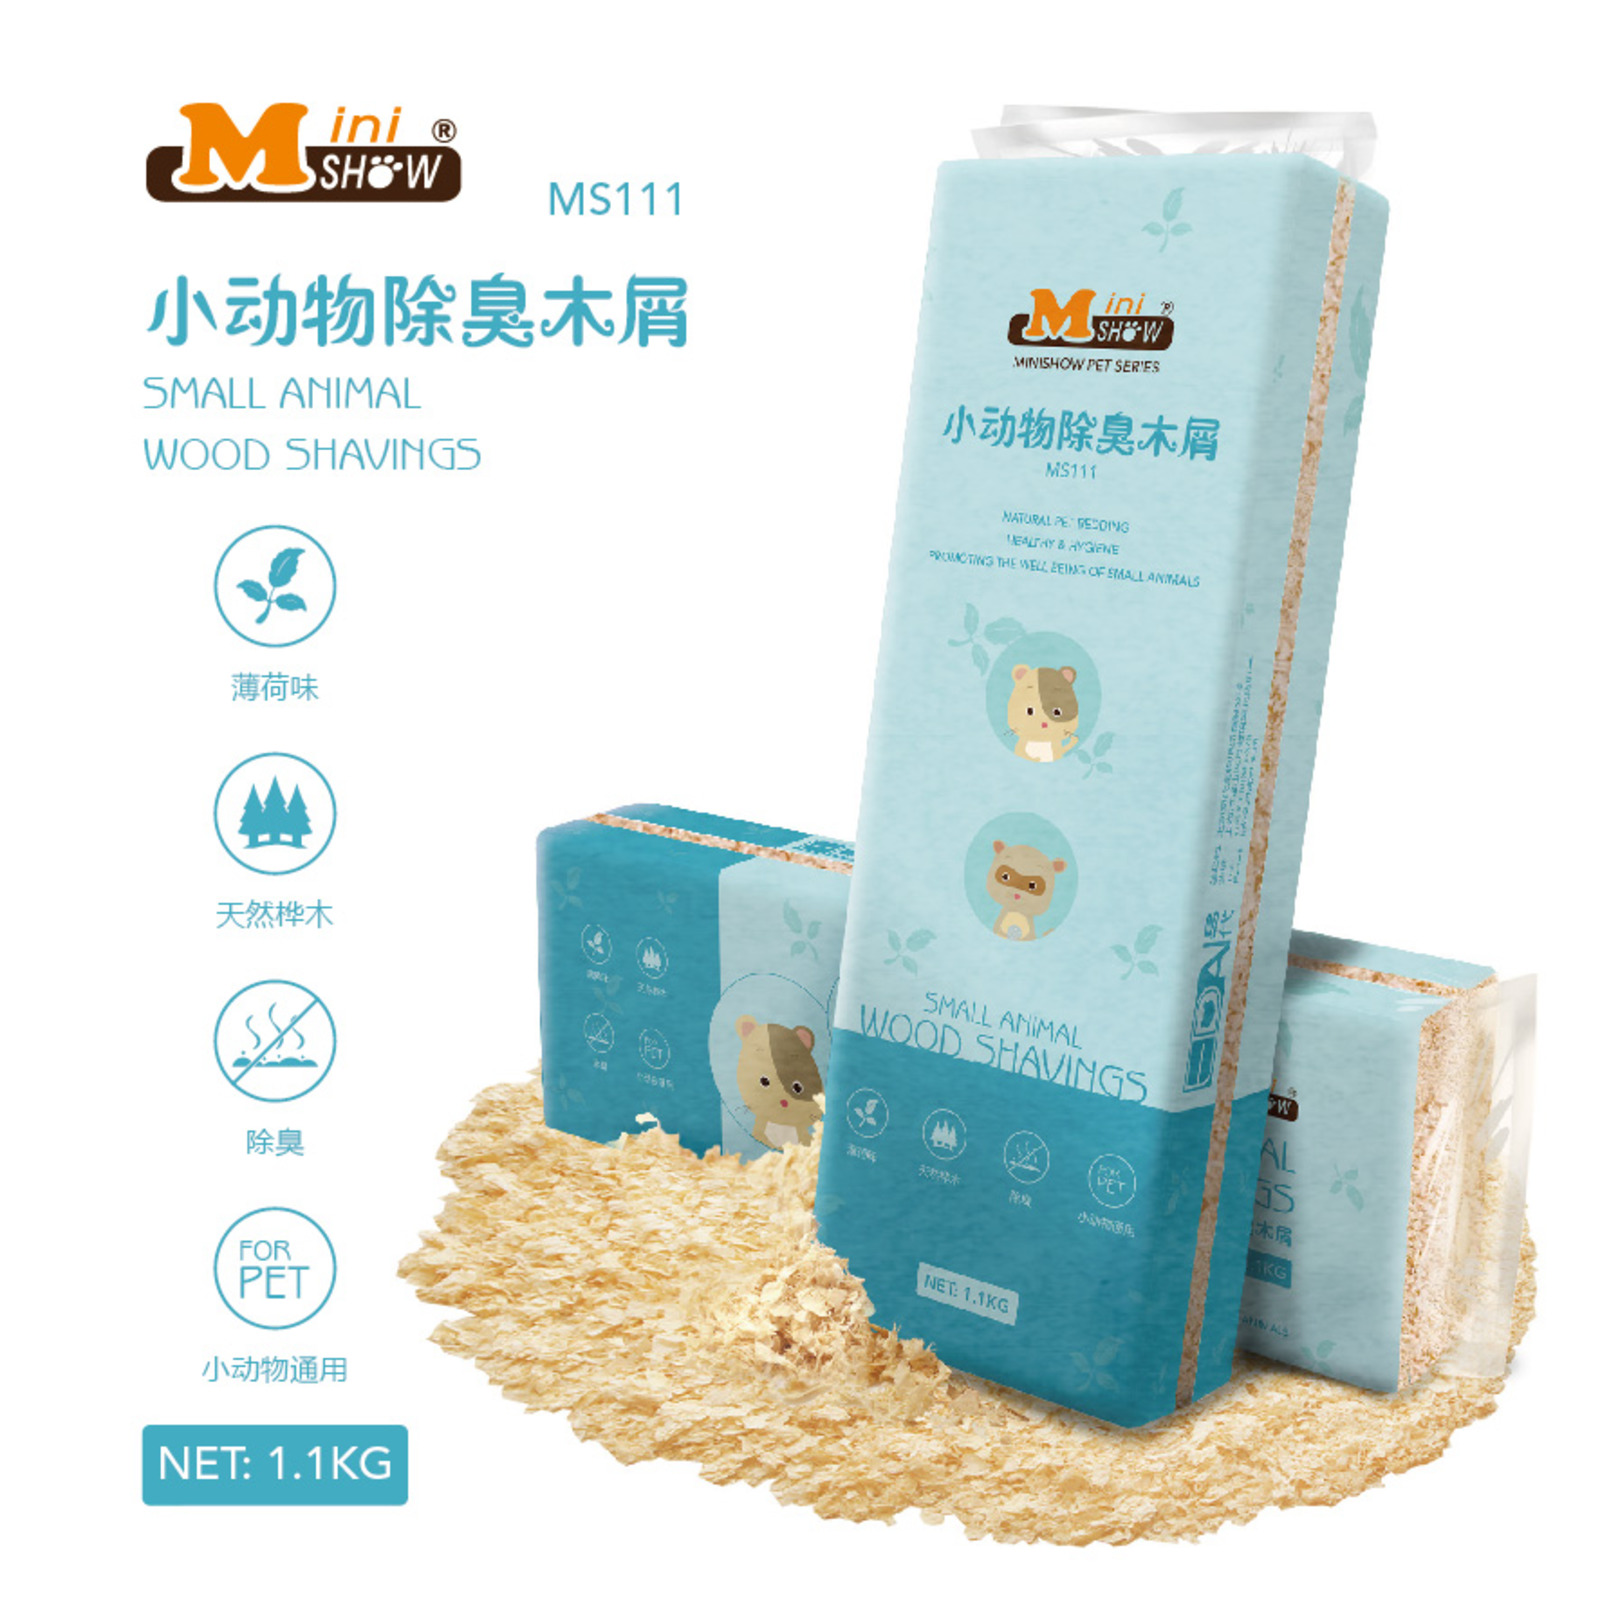 Edai Minishow Wood Shavings Mint